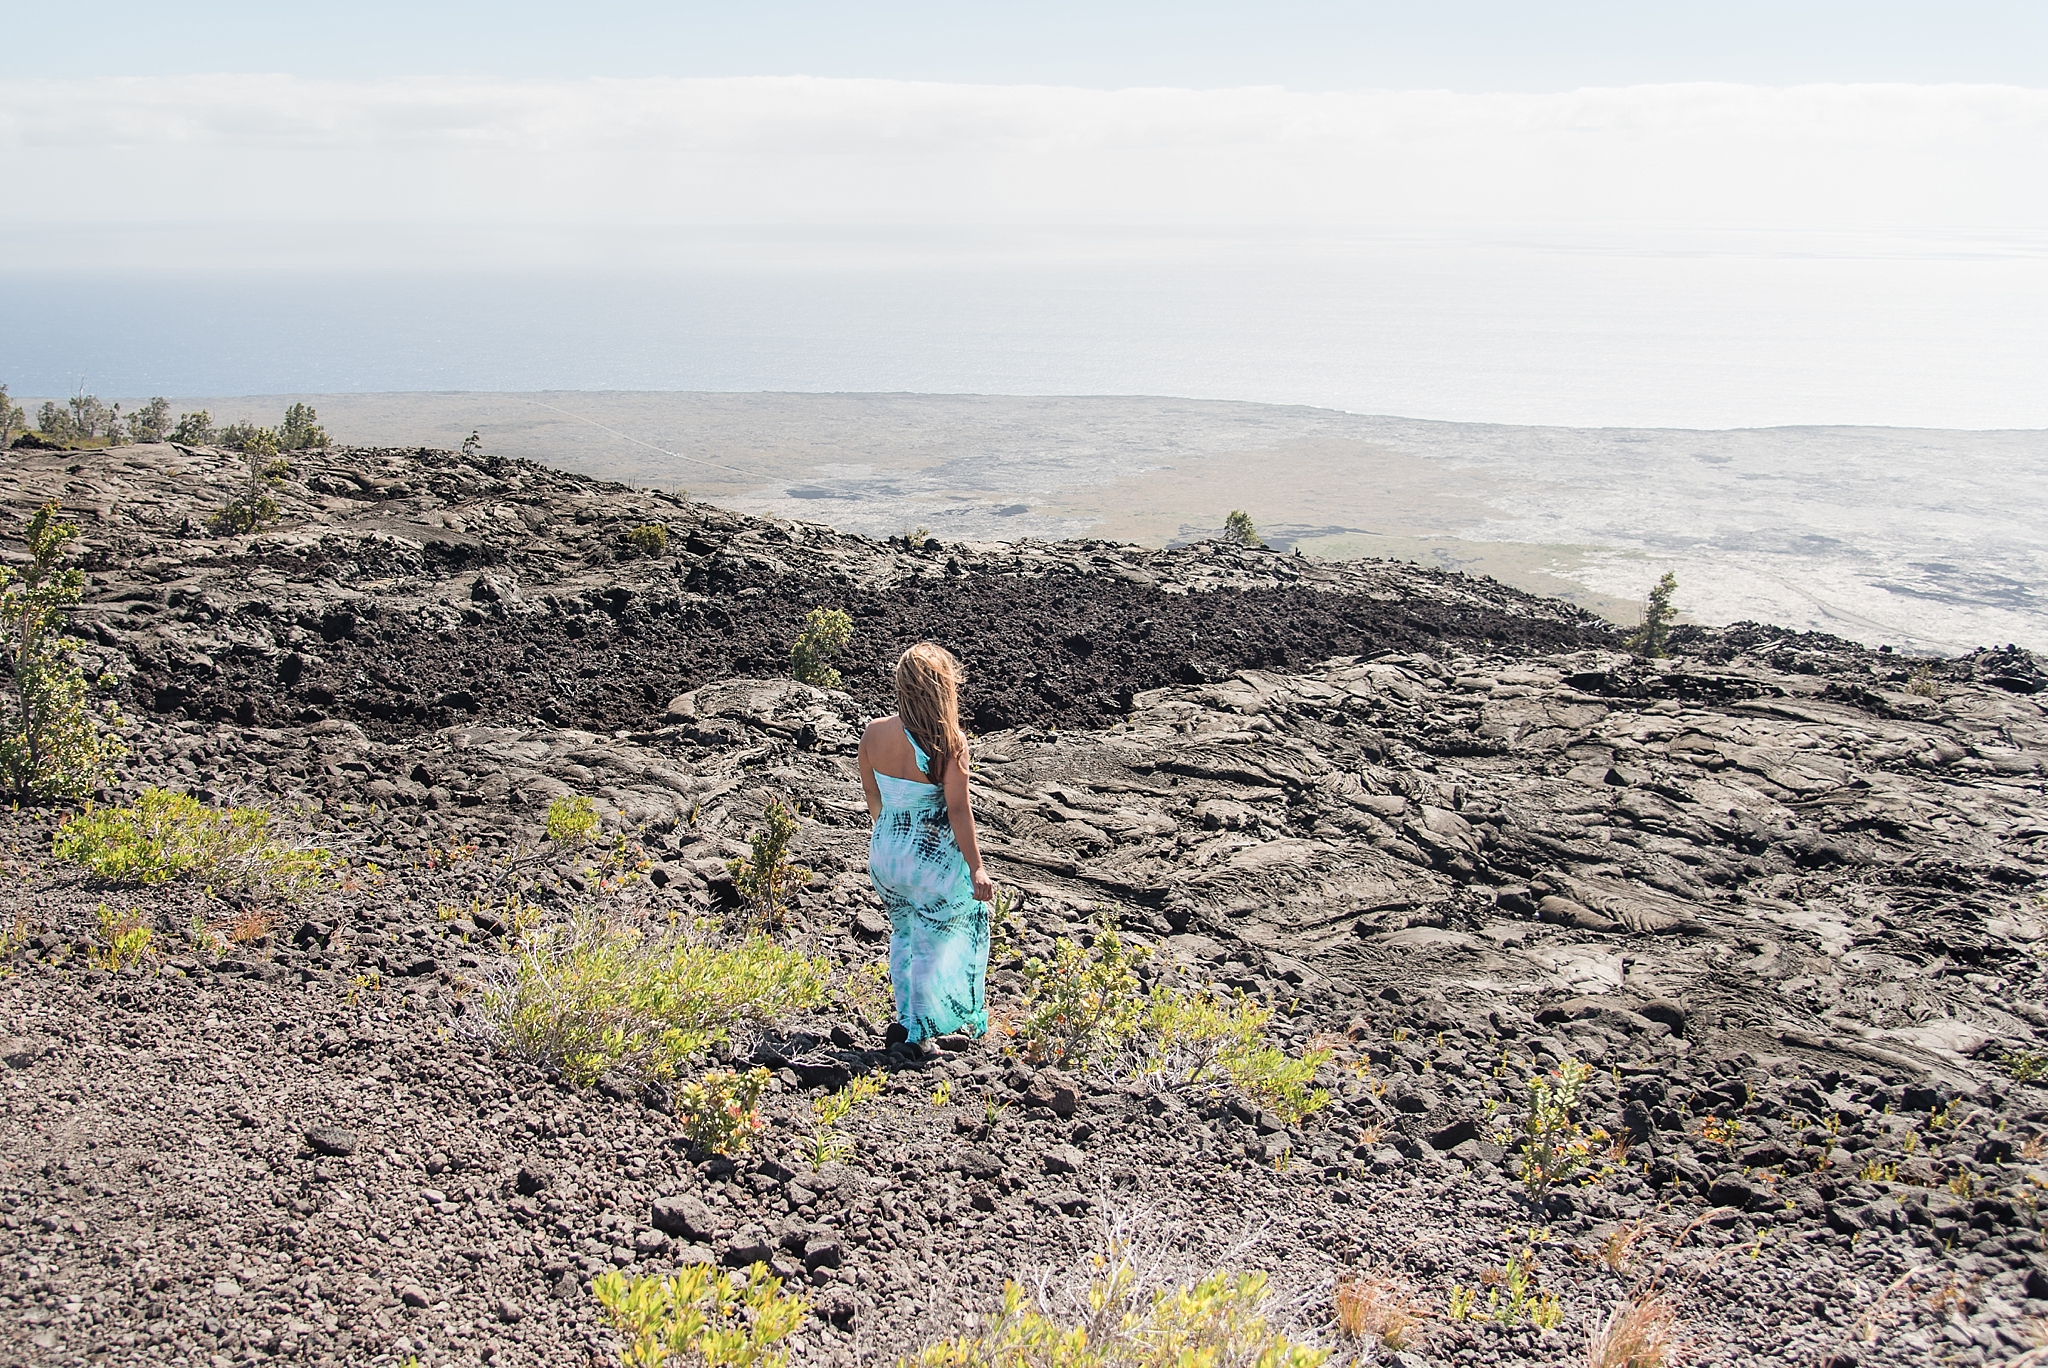 Driving the Chain of Craters Road on the Big Island, Hawai'i. Photo by Jade Min Photography.